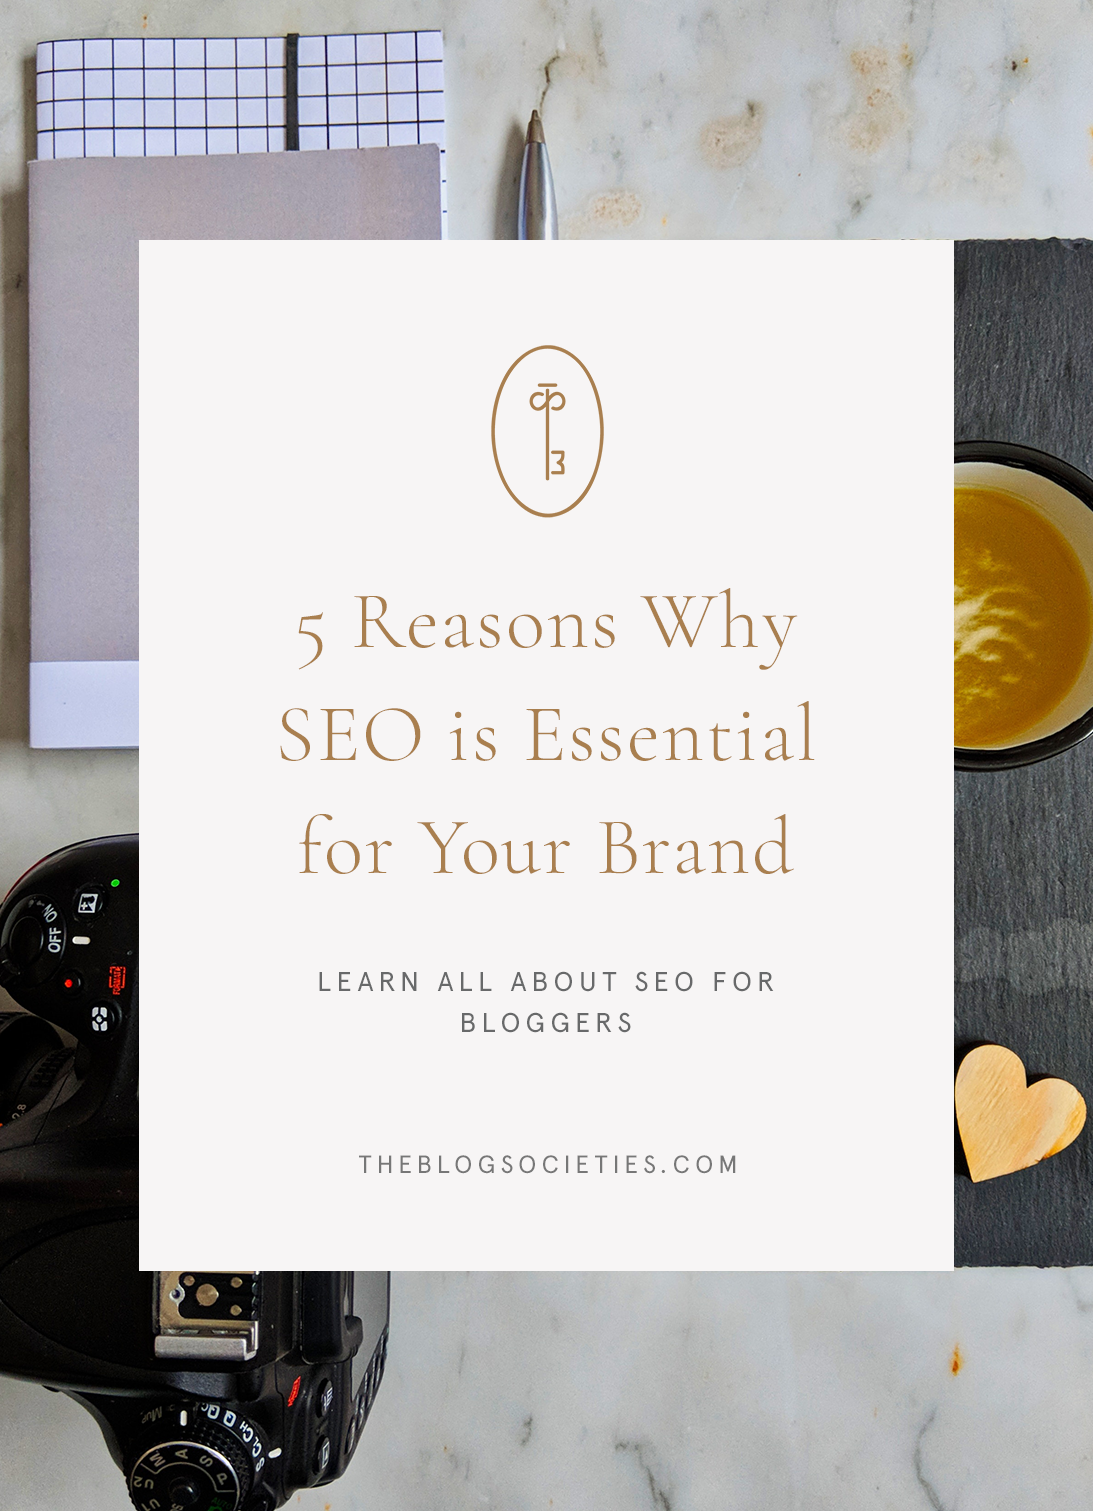 SEO for Bloggers: 5 Reasons Why SEO is Essential for Your Brand